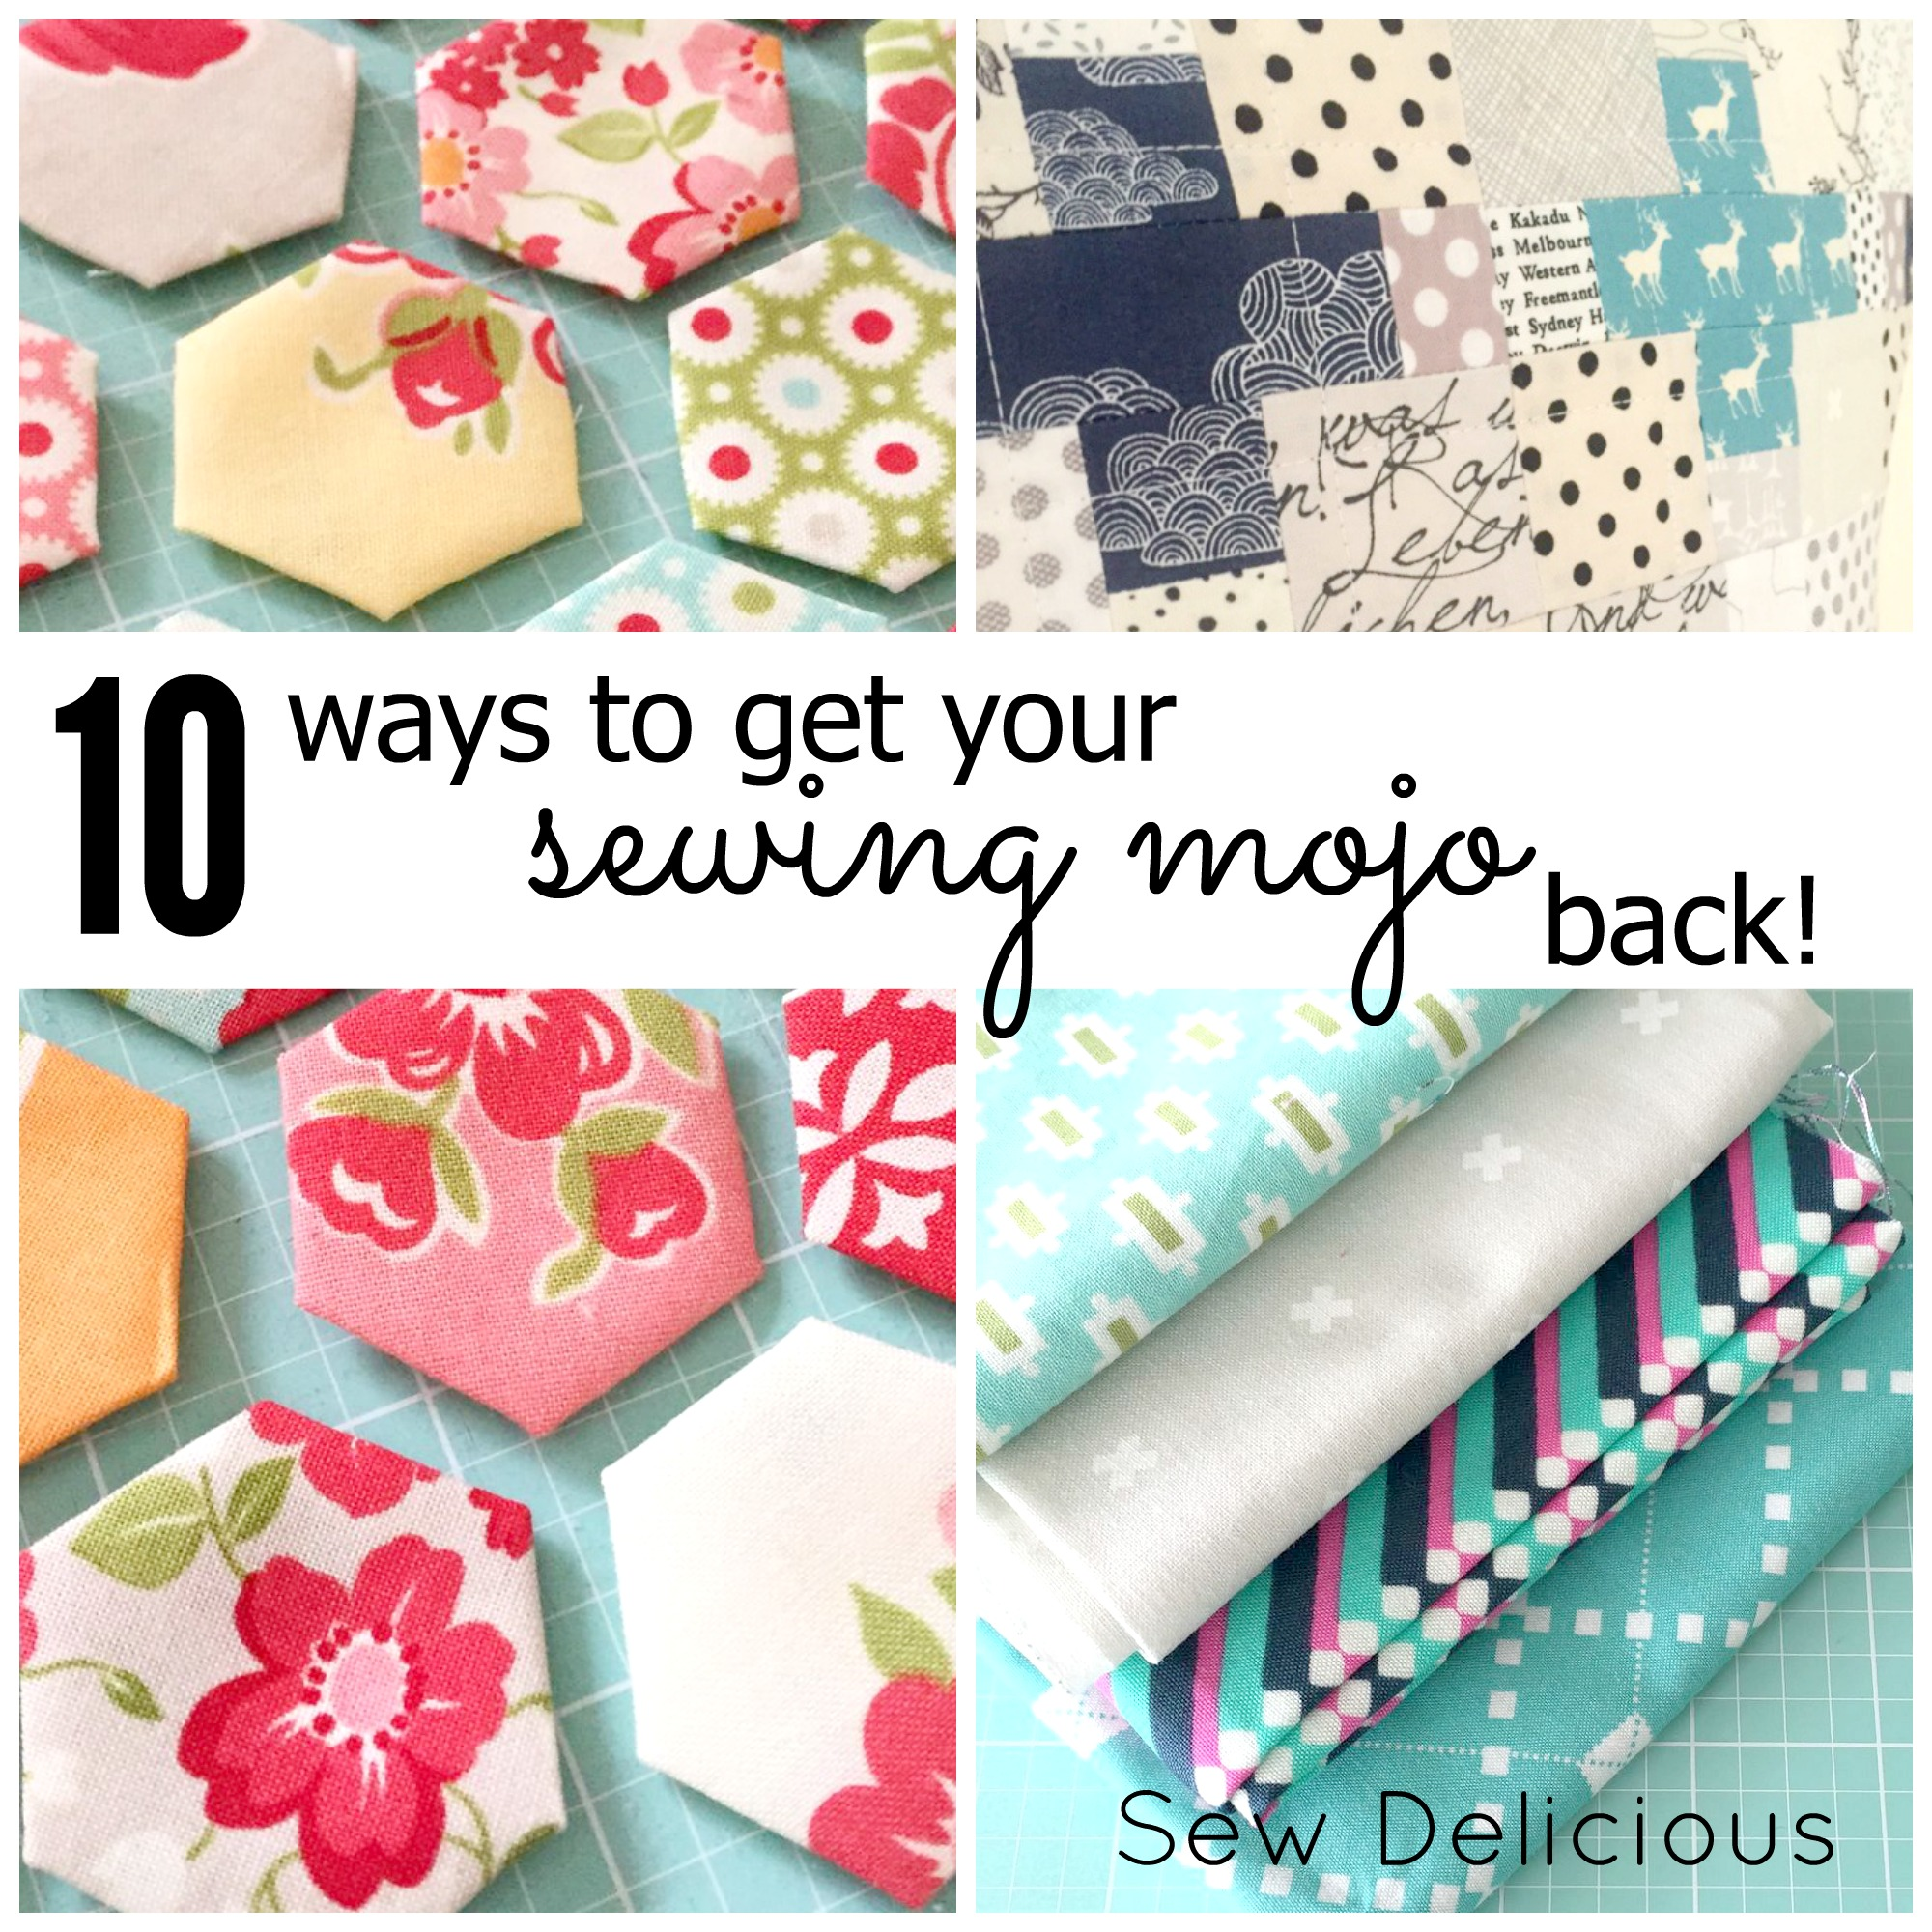 Get your sewing mojo back!